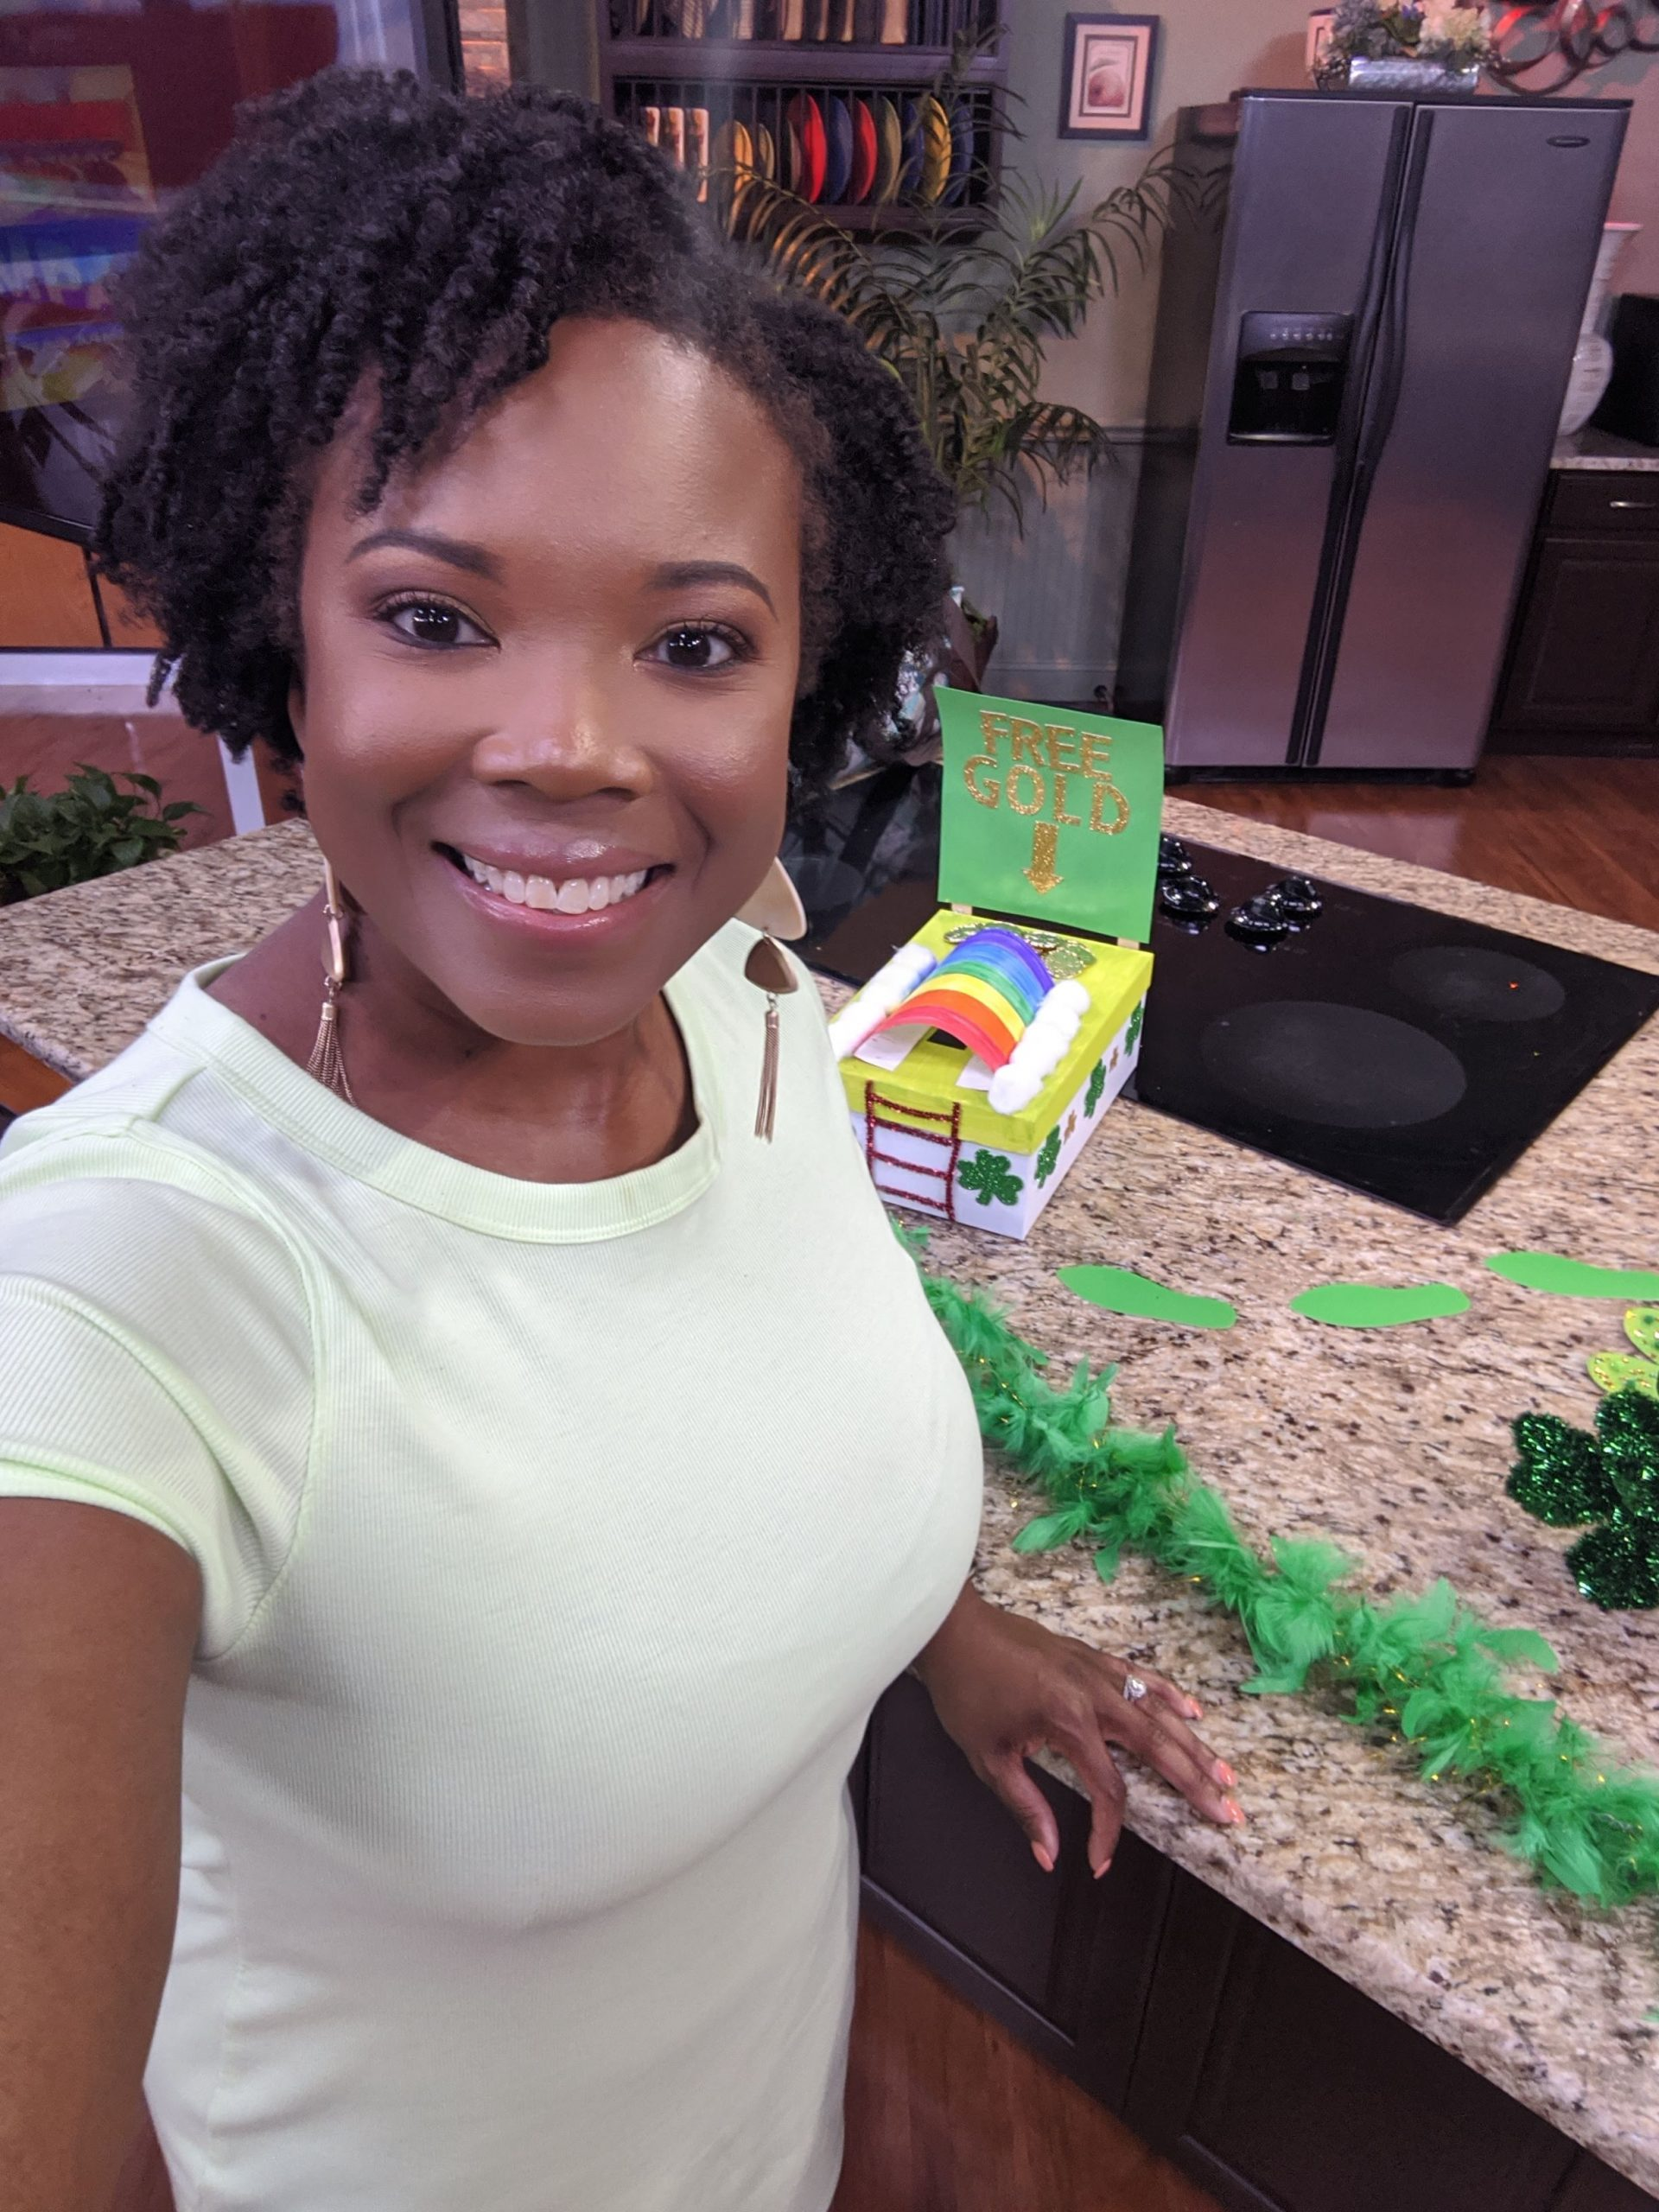 Blogger for Crafting a Fun Life at the Fox 13 News studio